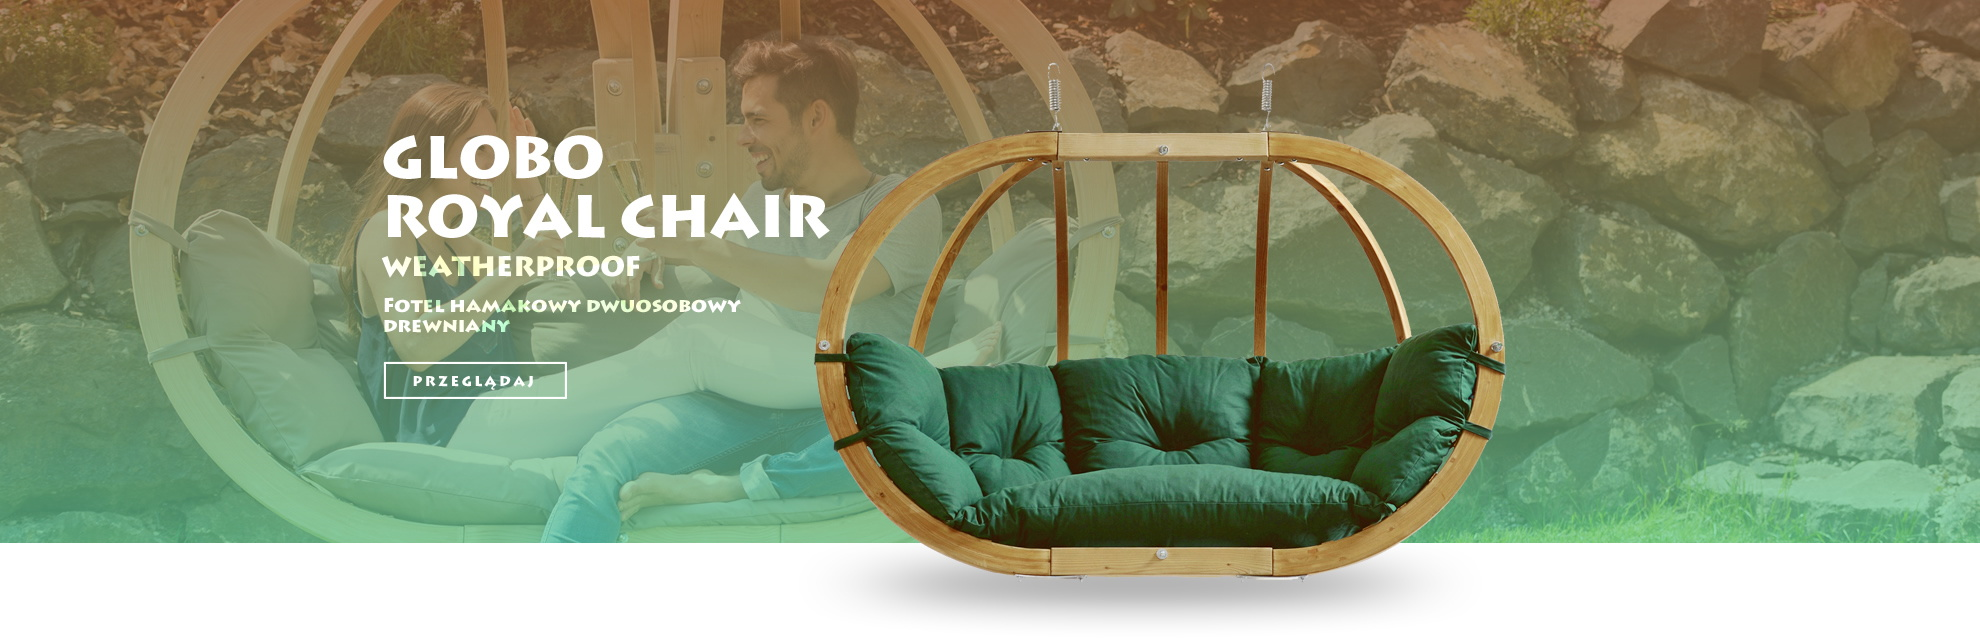 Globo royal chair